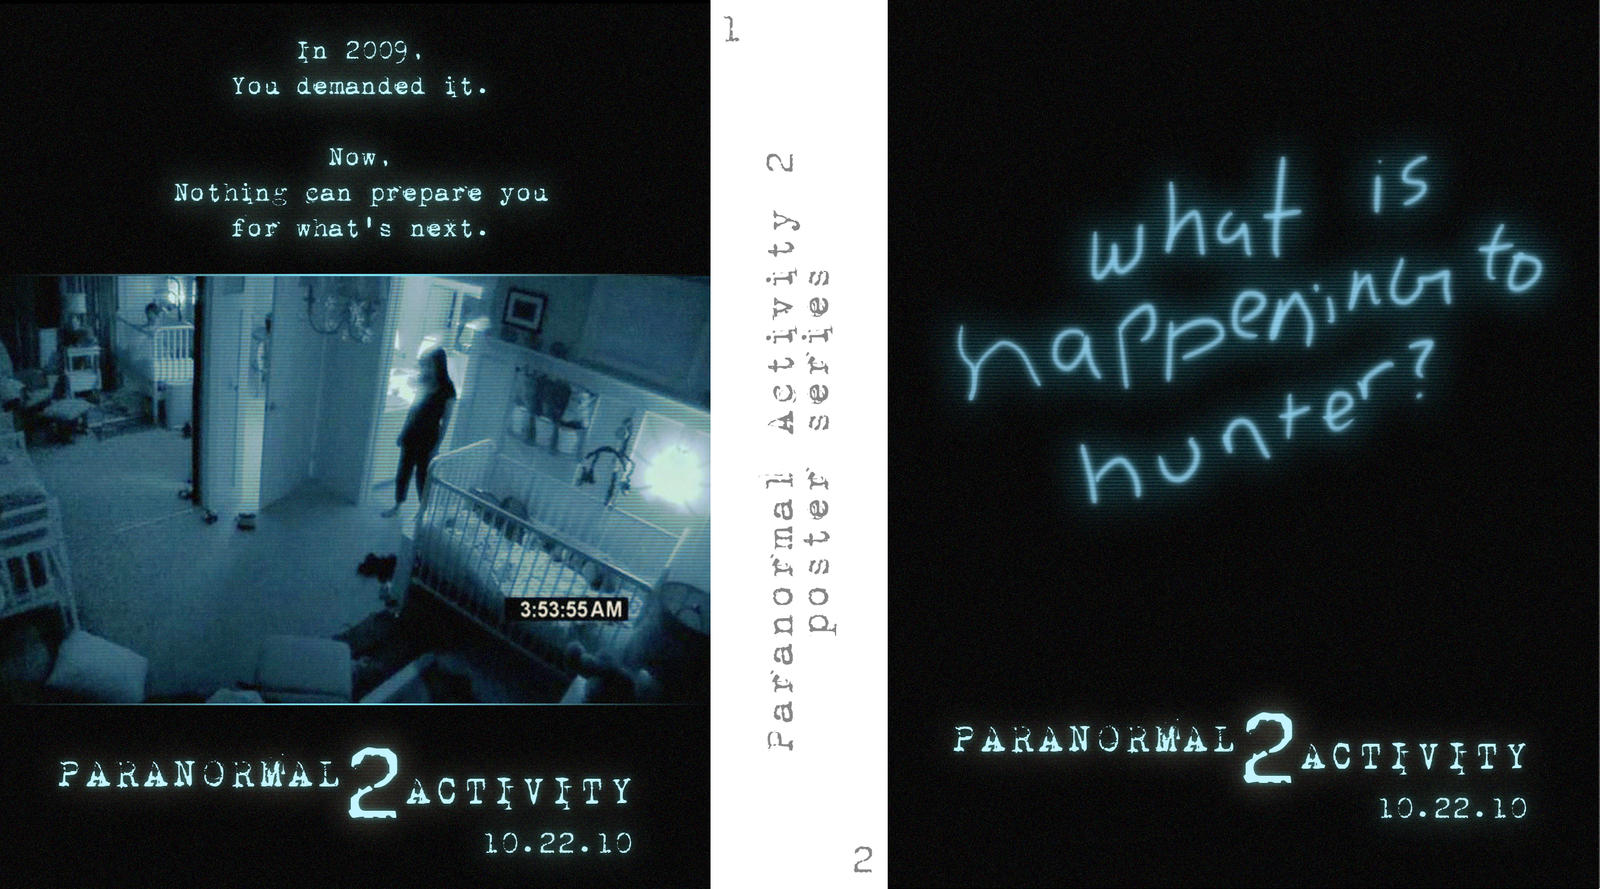 Paranormal Activity 2 Posters by Schizoepileptic